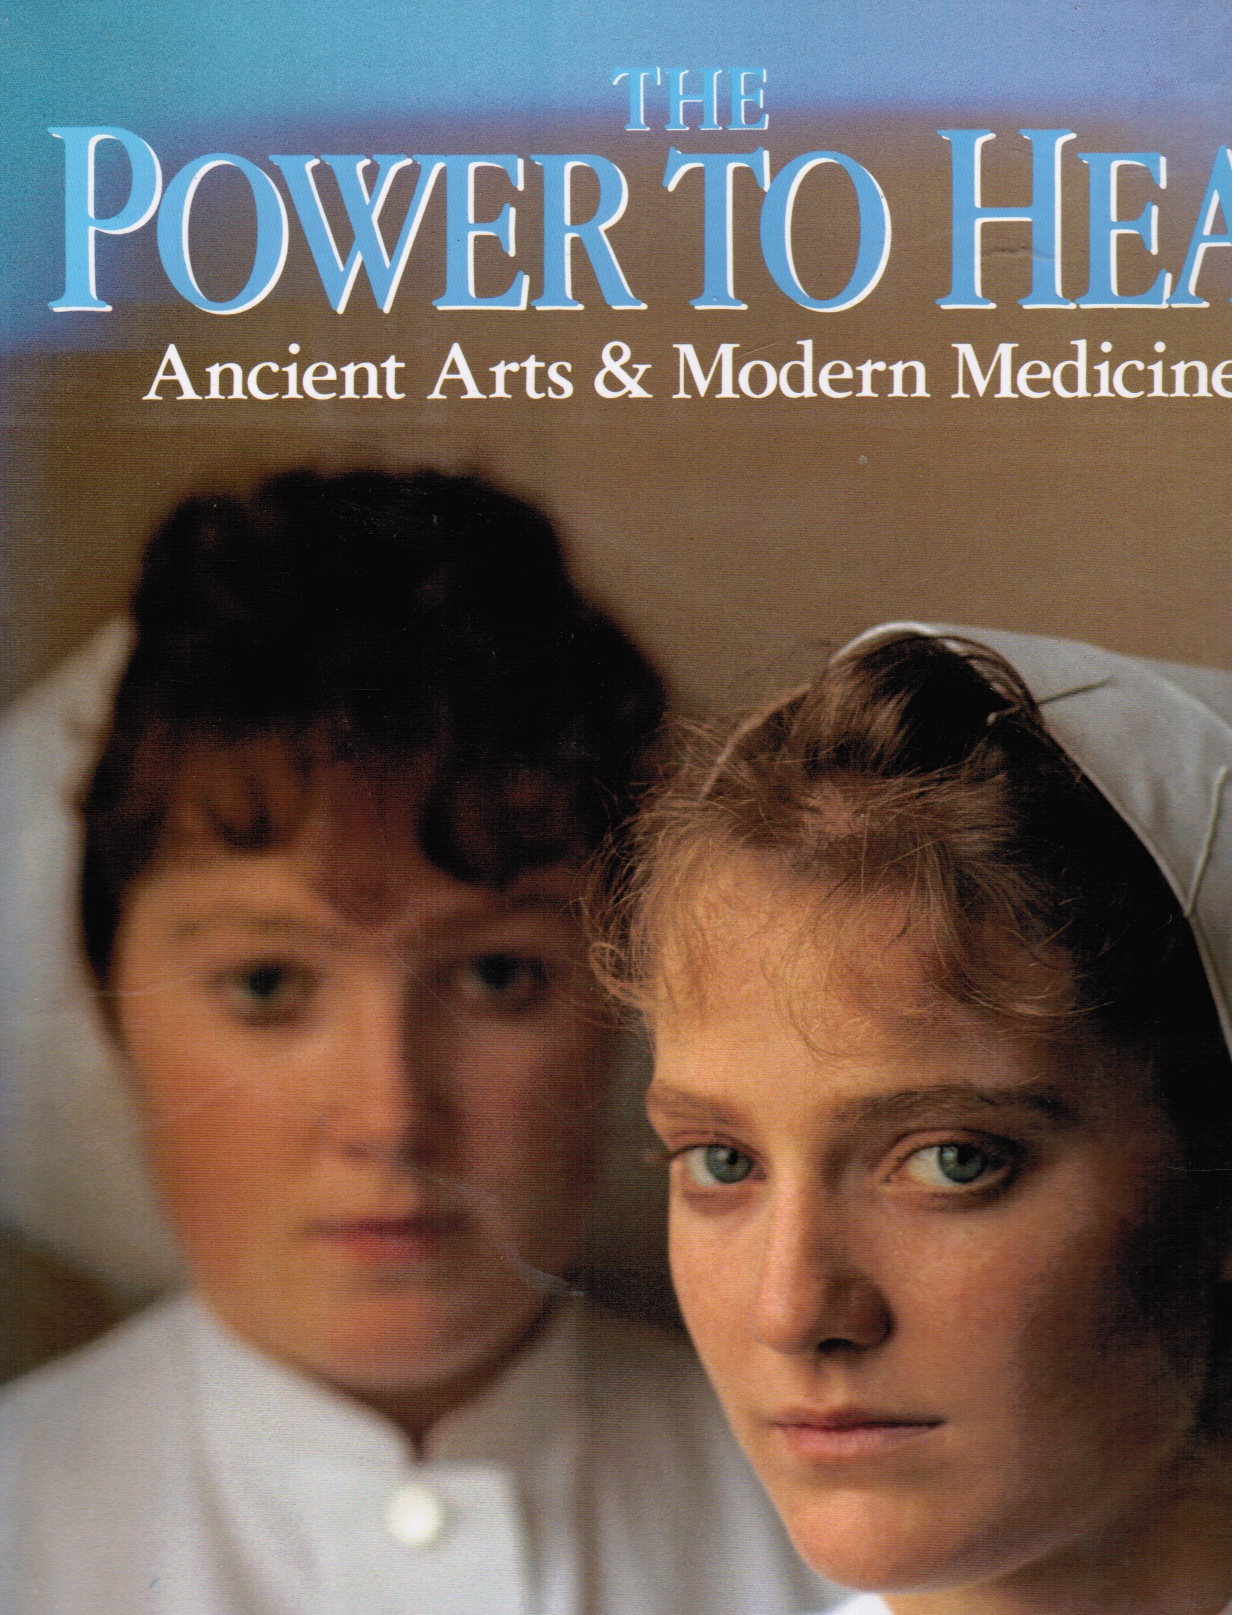 Image for The Power to Heal - Ancient Arts & Modern Medicine